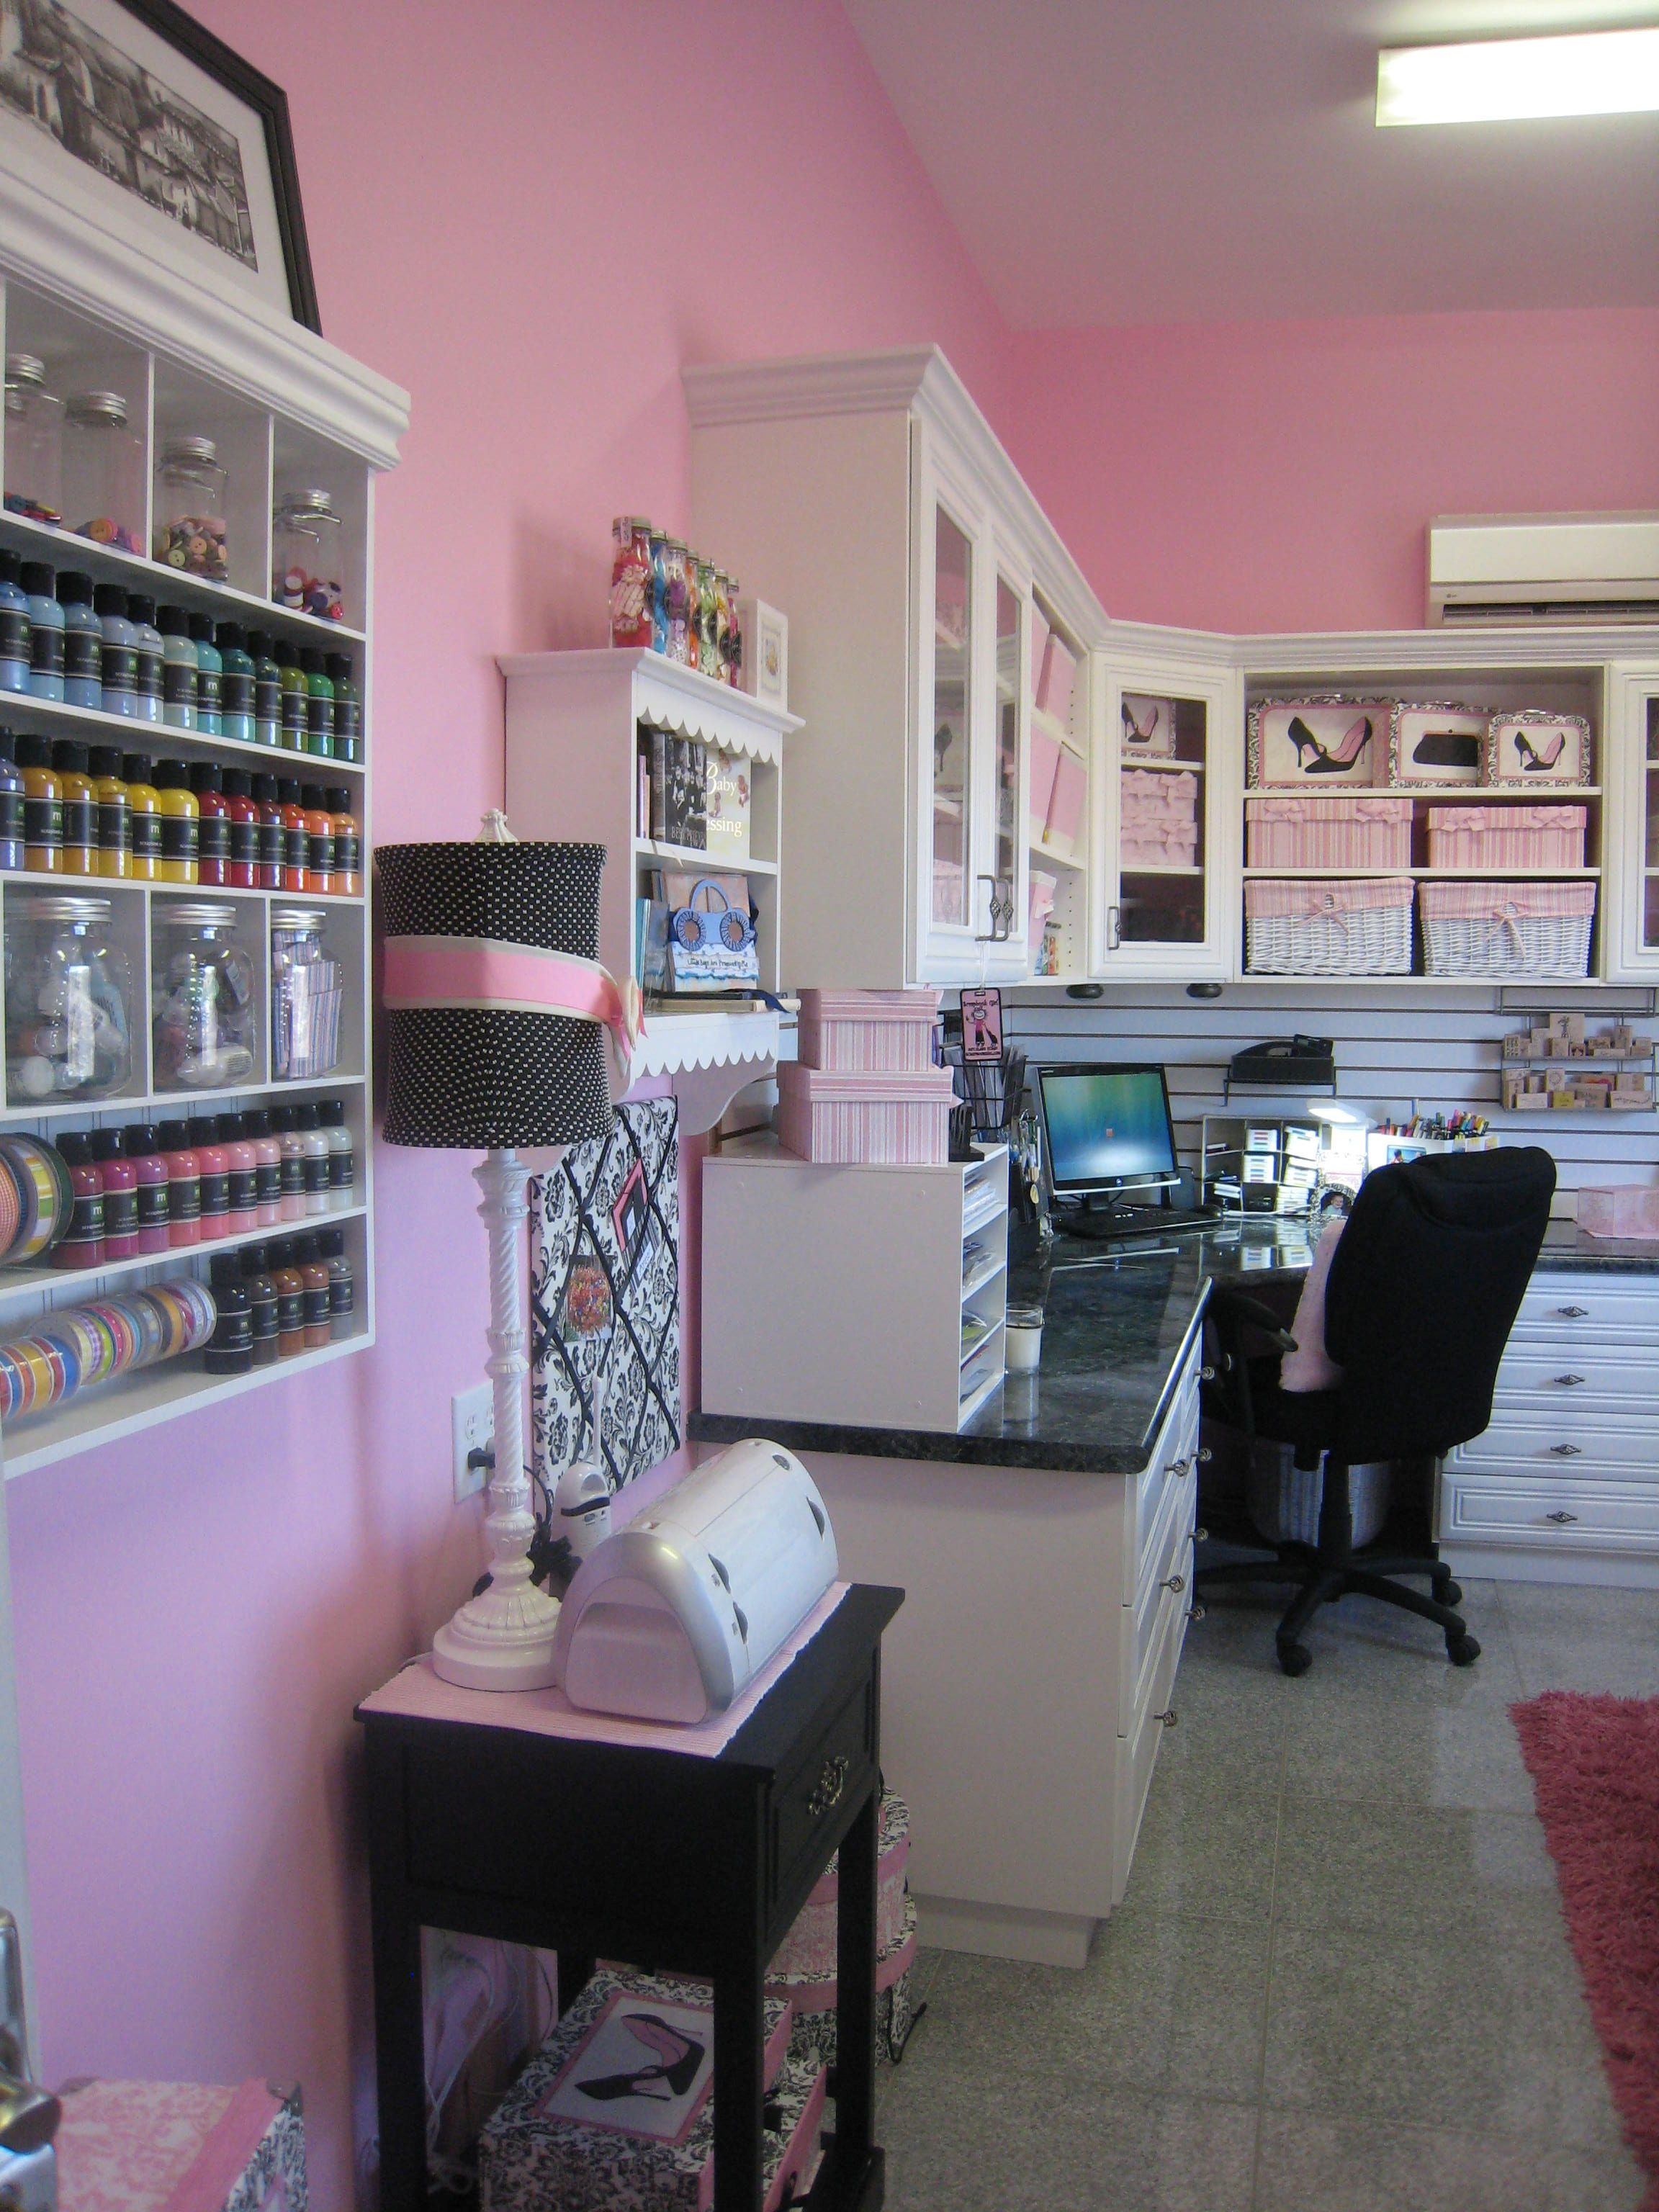 10x10 Room Layout Craft: Wow! What I Would Do To Have A Craft Room Like This...or